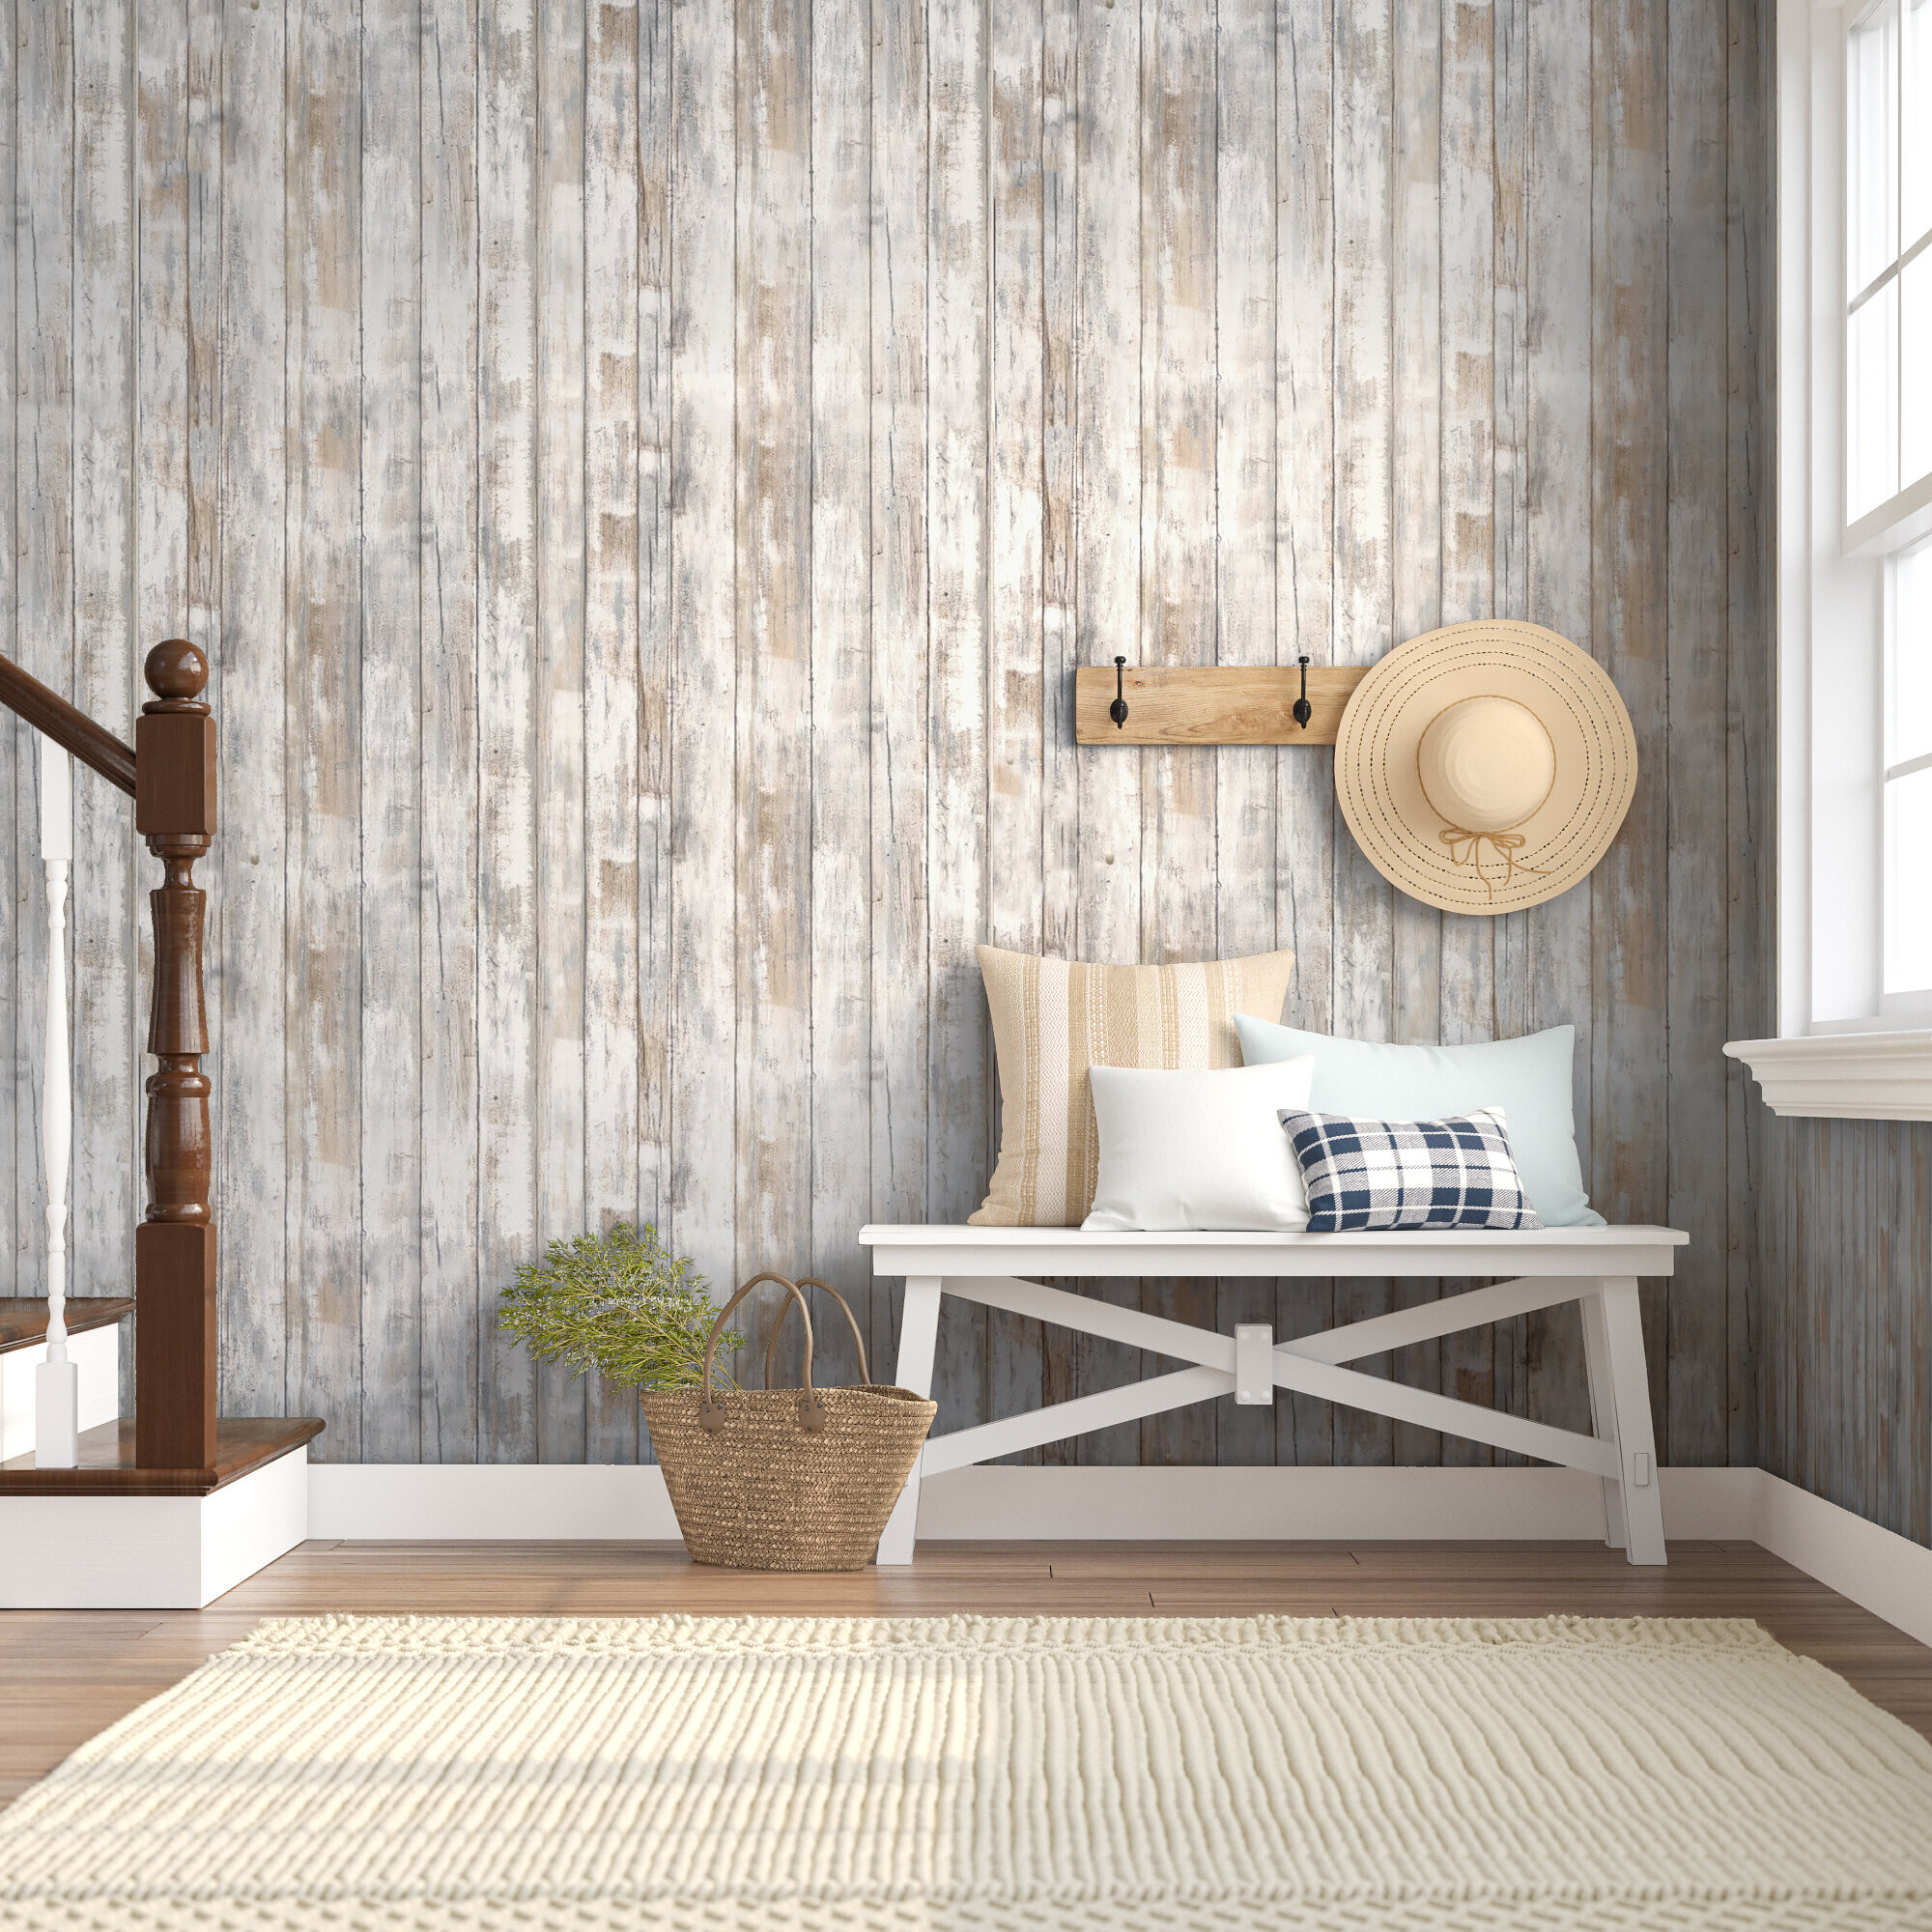 Wayfair Peel And Stick Removable Wallpaper You Ll Love In 2021